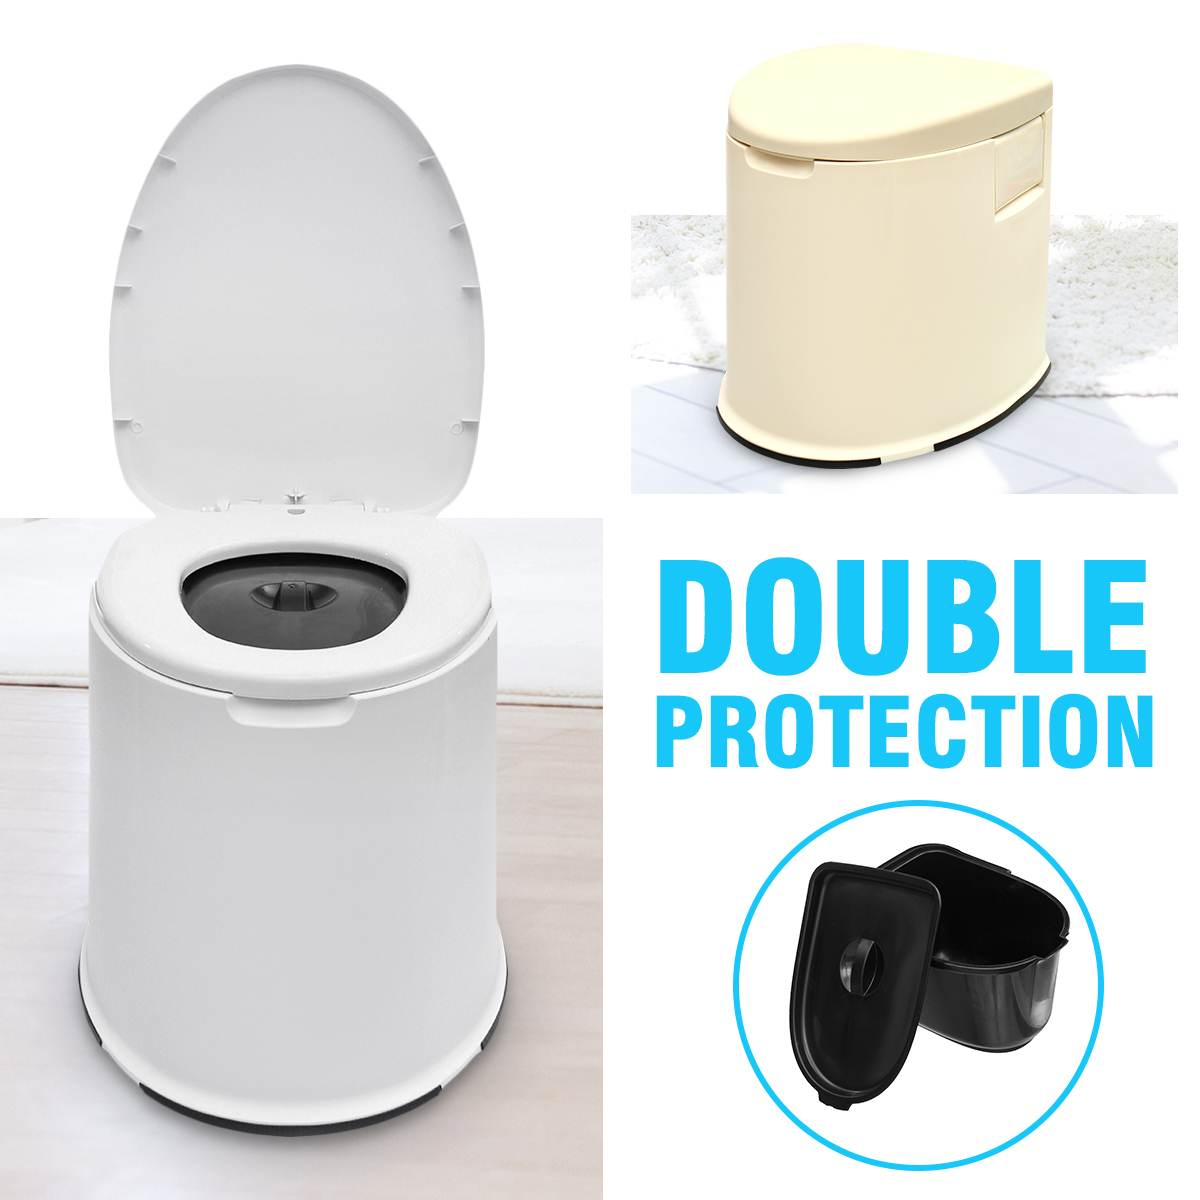 Us 69 6 52 Off 12l Capacity Comfort Portable Toilet Mobile Toilet Travel Camping Commode Potty Outdoor Indoor In Urinals From Home Improvement On